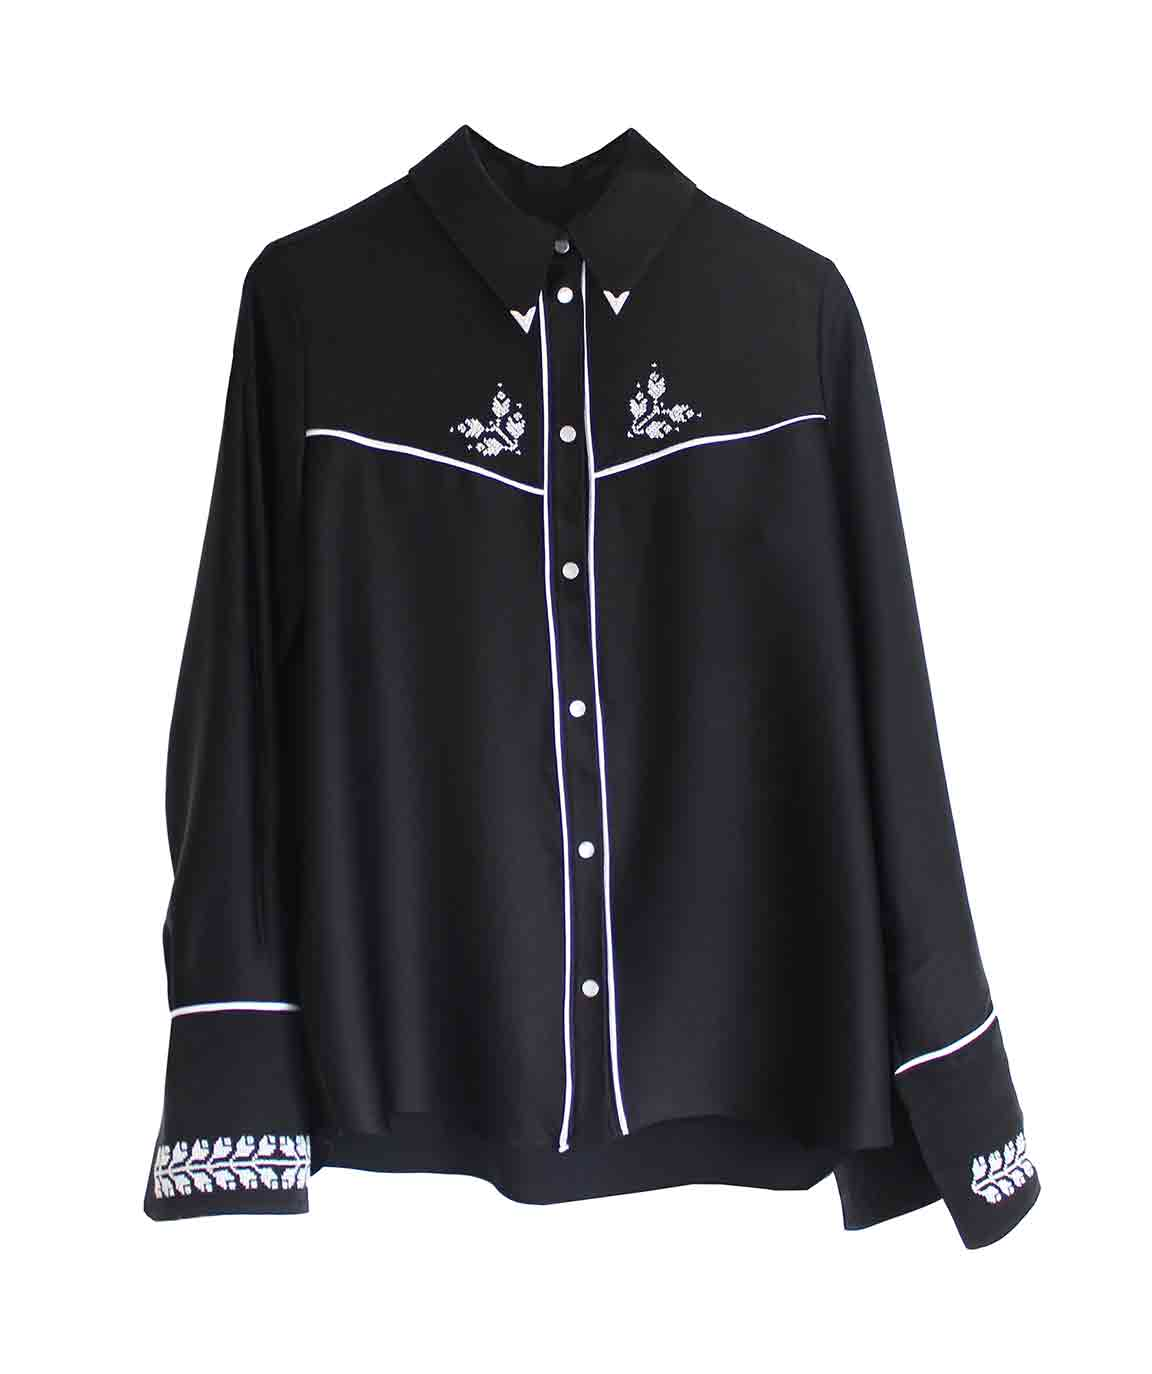 Black Embroidered Cowboy Shirt